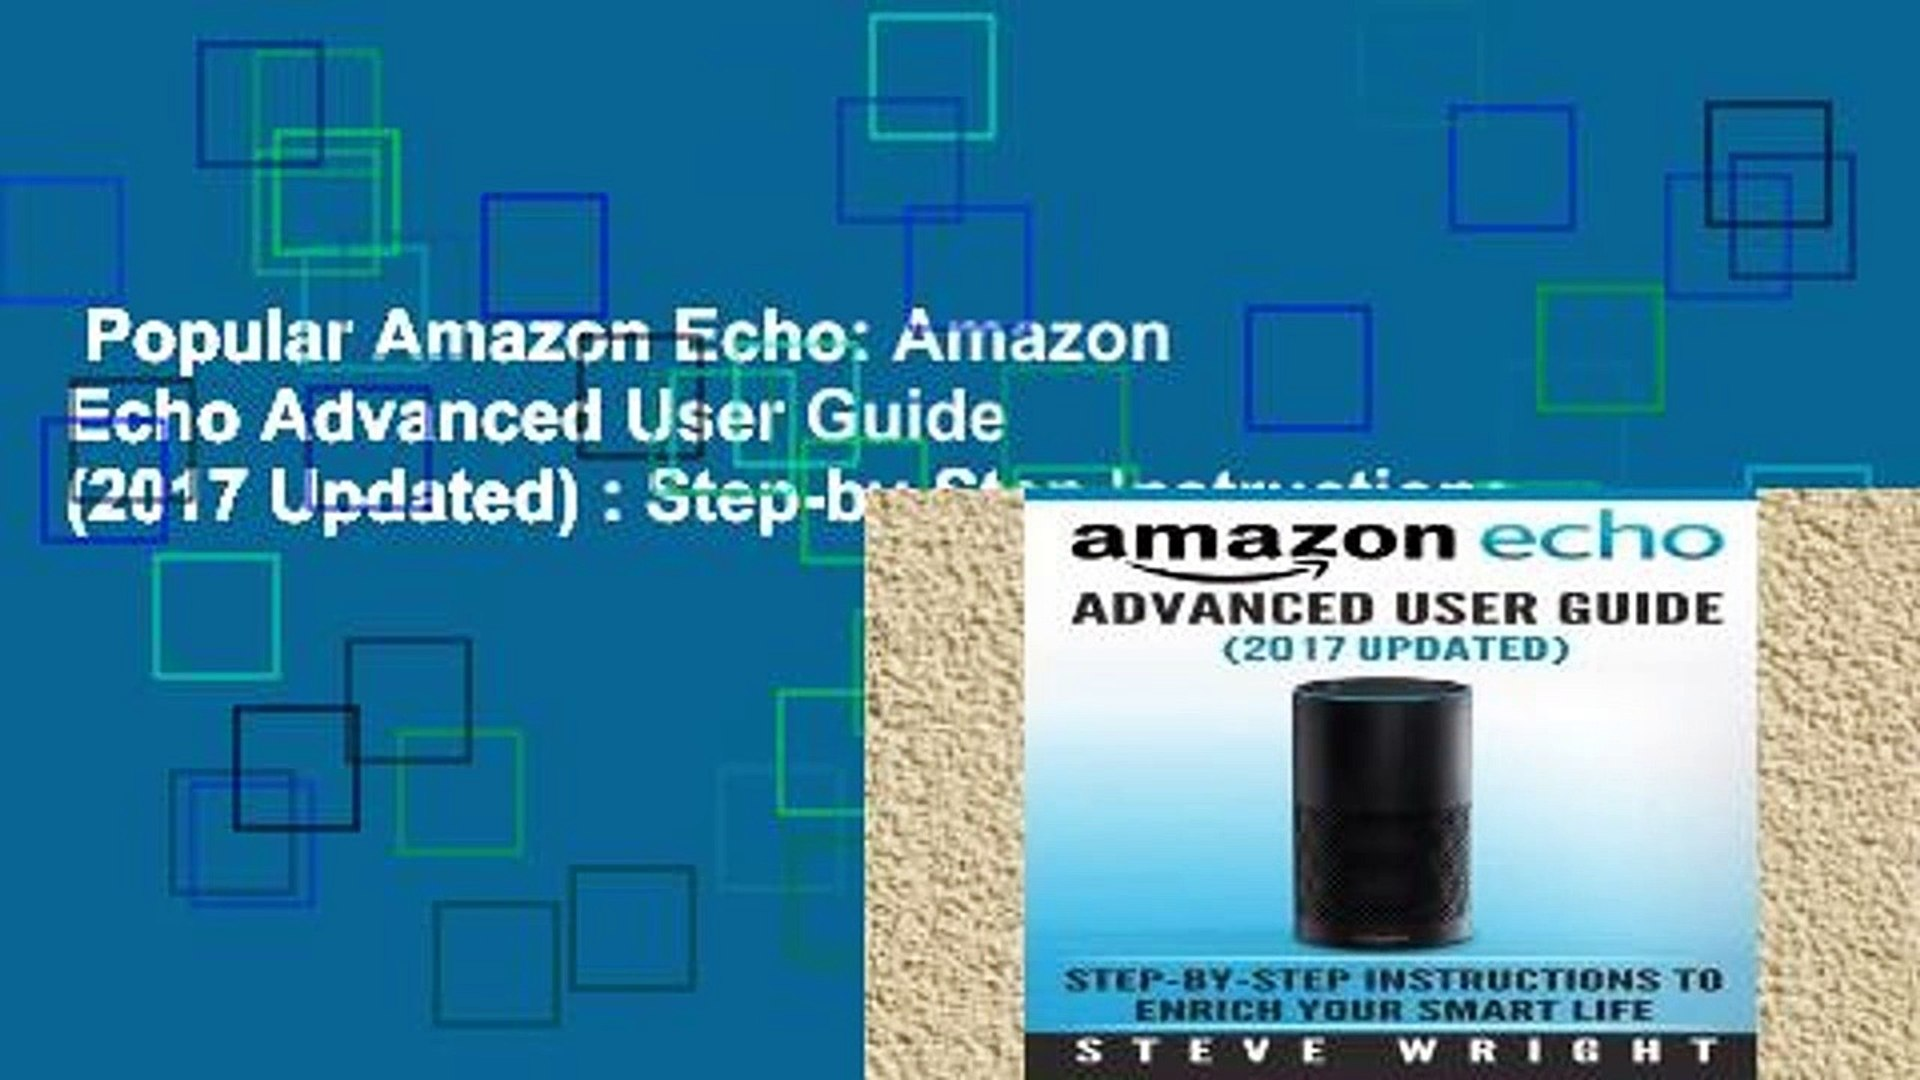 Popular Amazon Echo: Amazon Echo Advanced User Guide (2017 Updated) : Step-by-Step Instructions